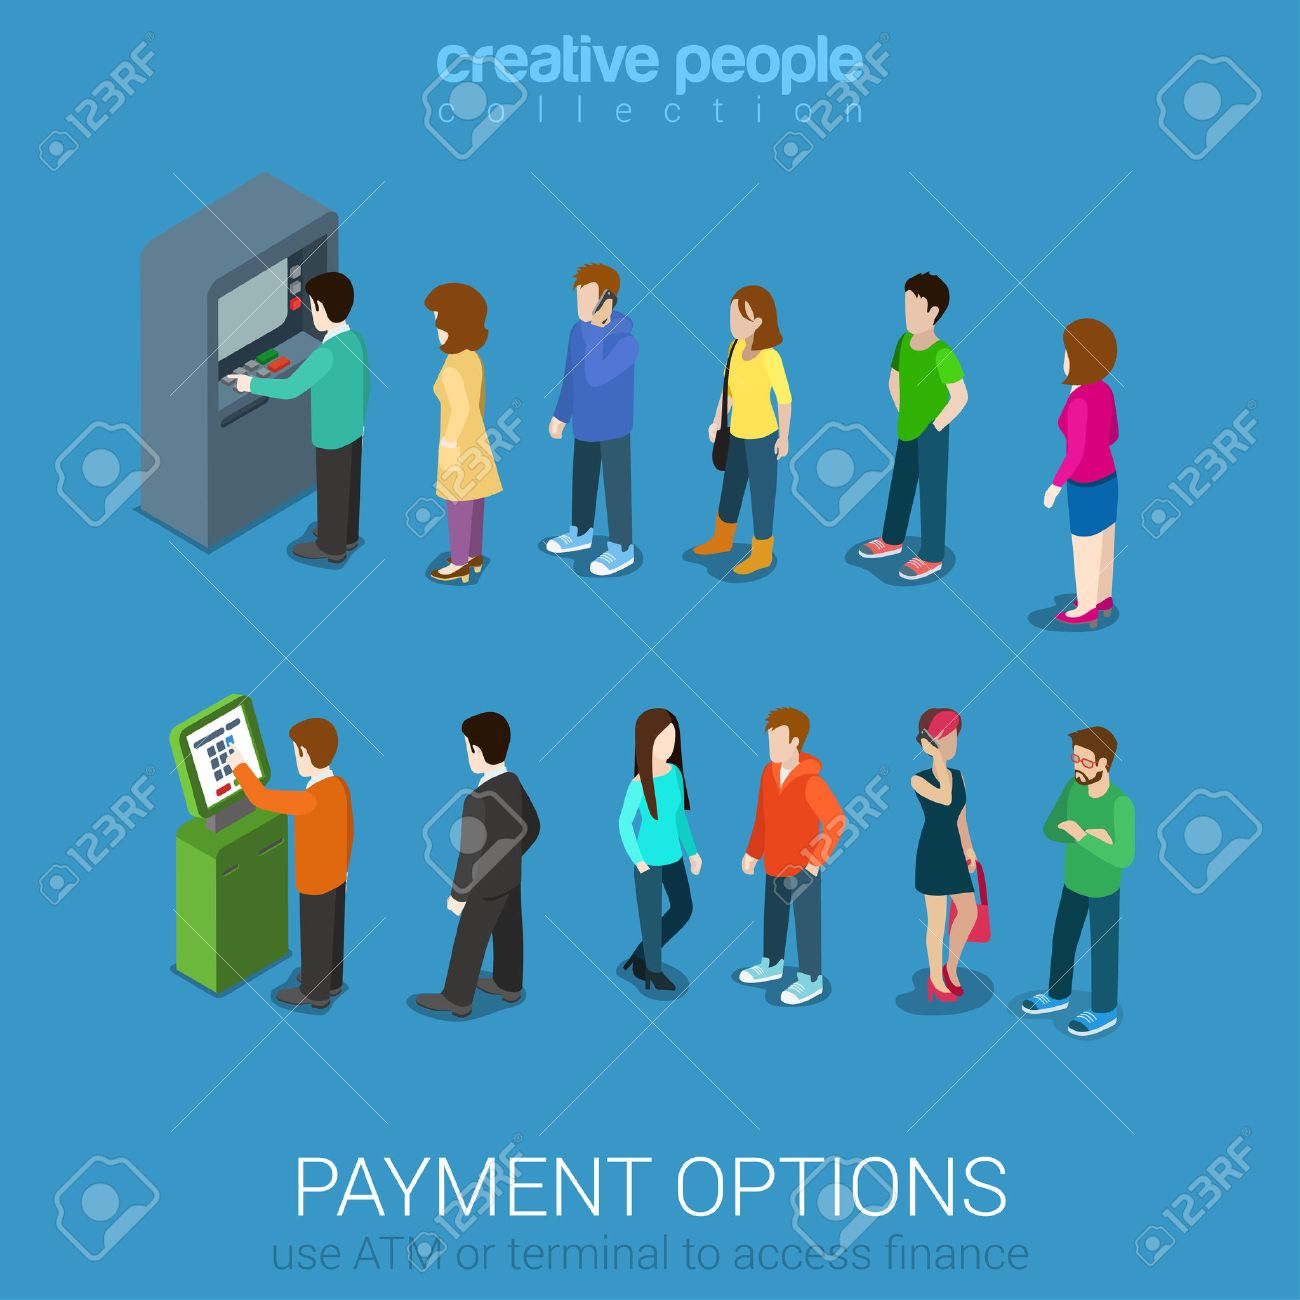 Payment options banking finance money flat 3d web isometric infographic vector. Line of casual young modern men women waiting ATM and terminal. Creative people collection. Stock Vector - 48577341